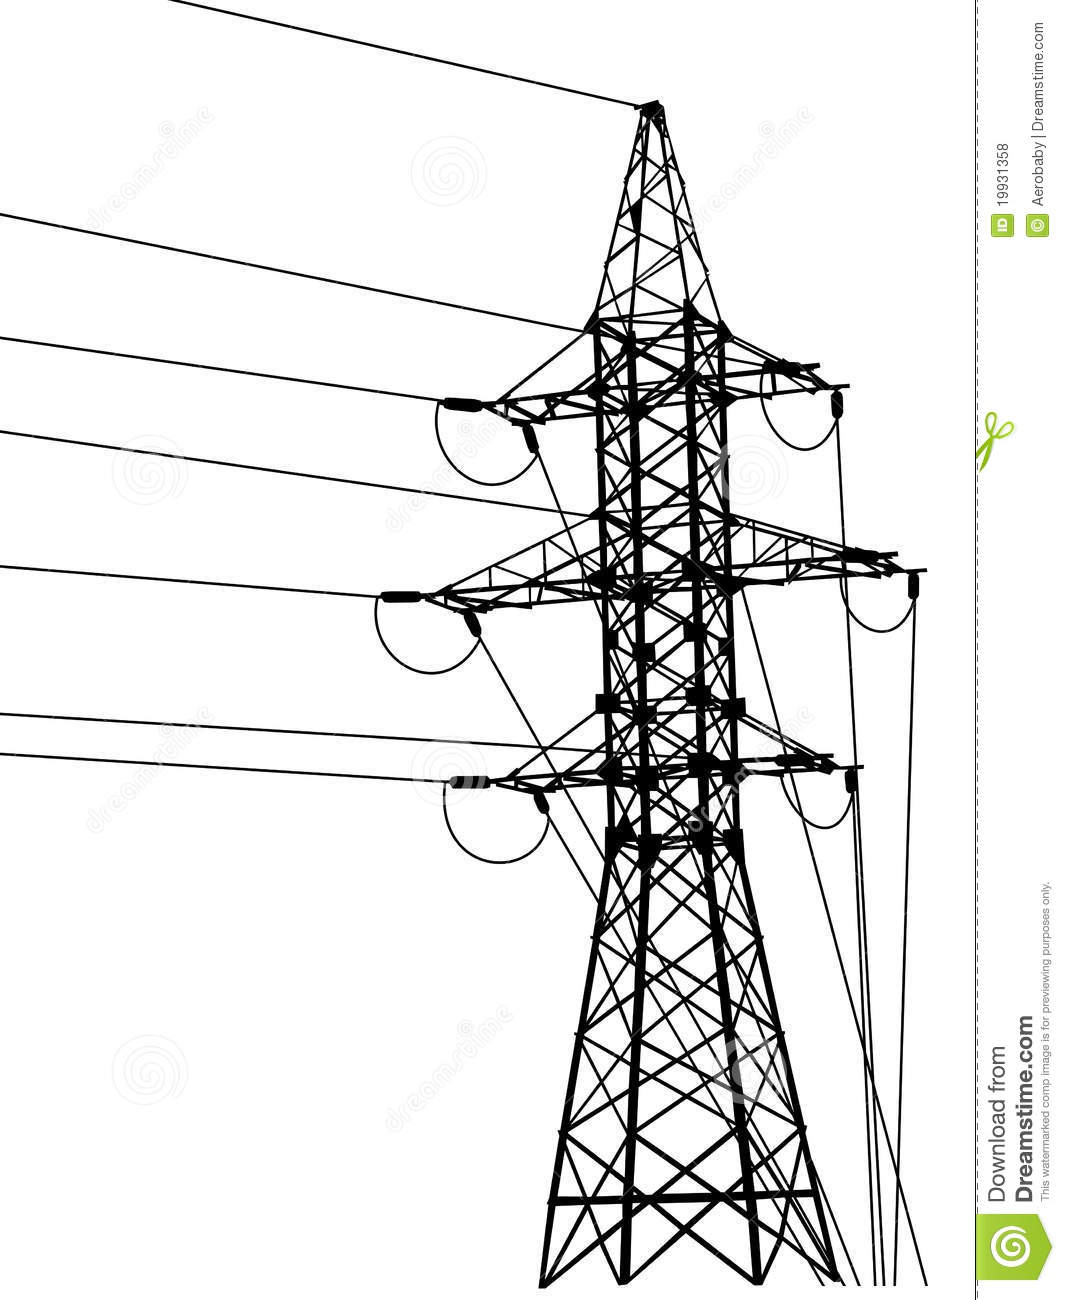 Electrical Tower Clipart